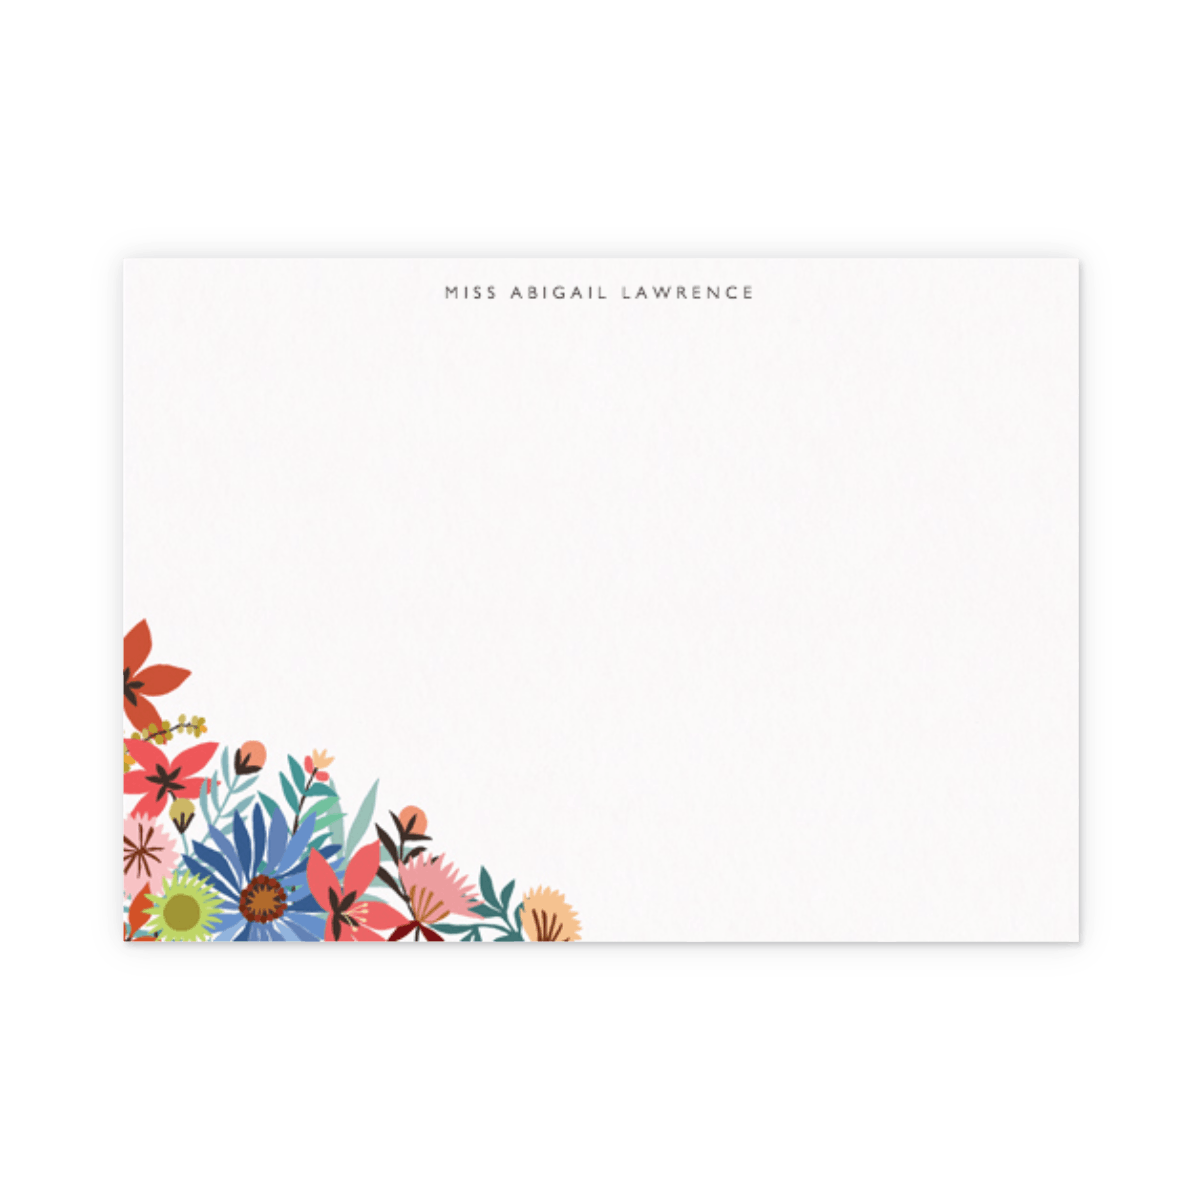 Https%3a%2f%2fwww.papier.com%2fproduct image%2f15912%2f10%2fmeadow flowers 4208 front 1484156325.png?ixlib=rb 1.1